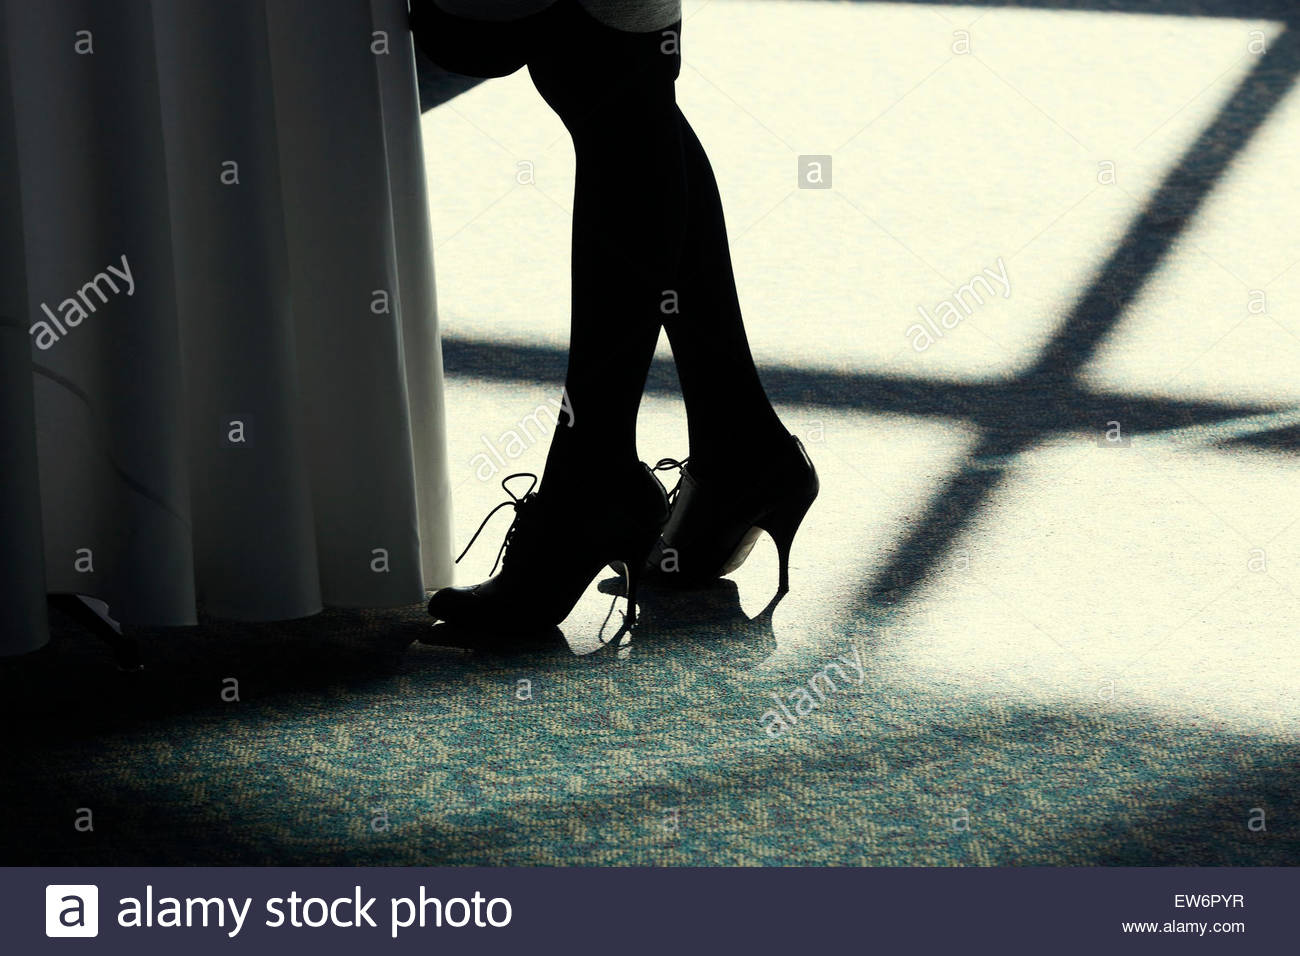 A woman in high heels stands in shafts of light on the floor. - Stock Image